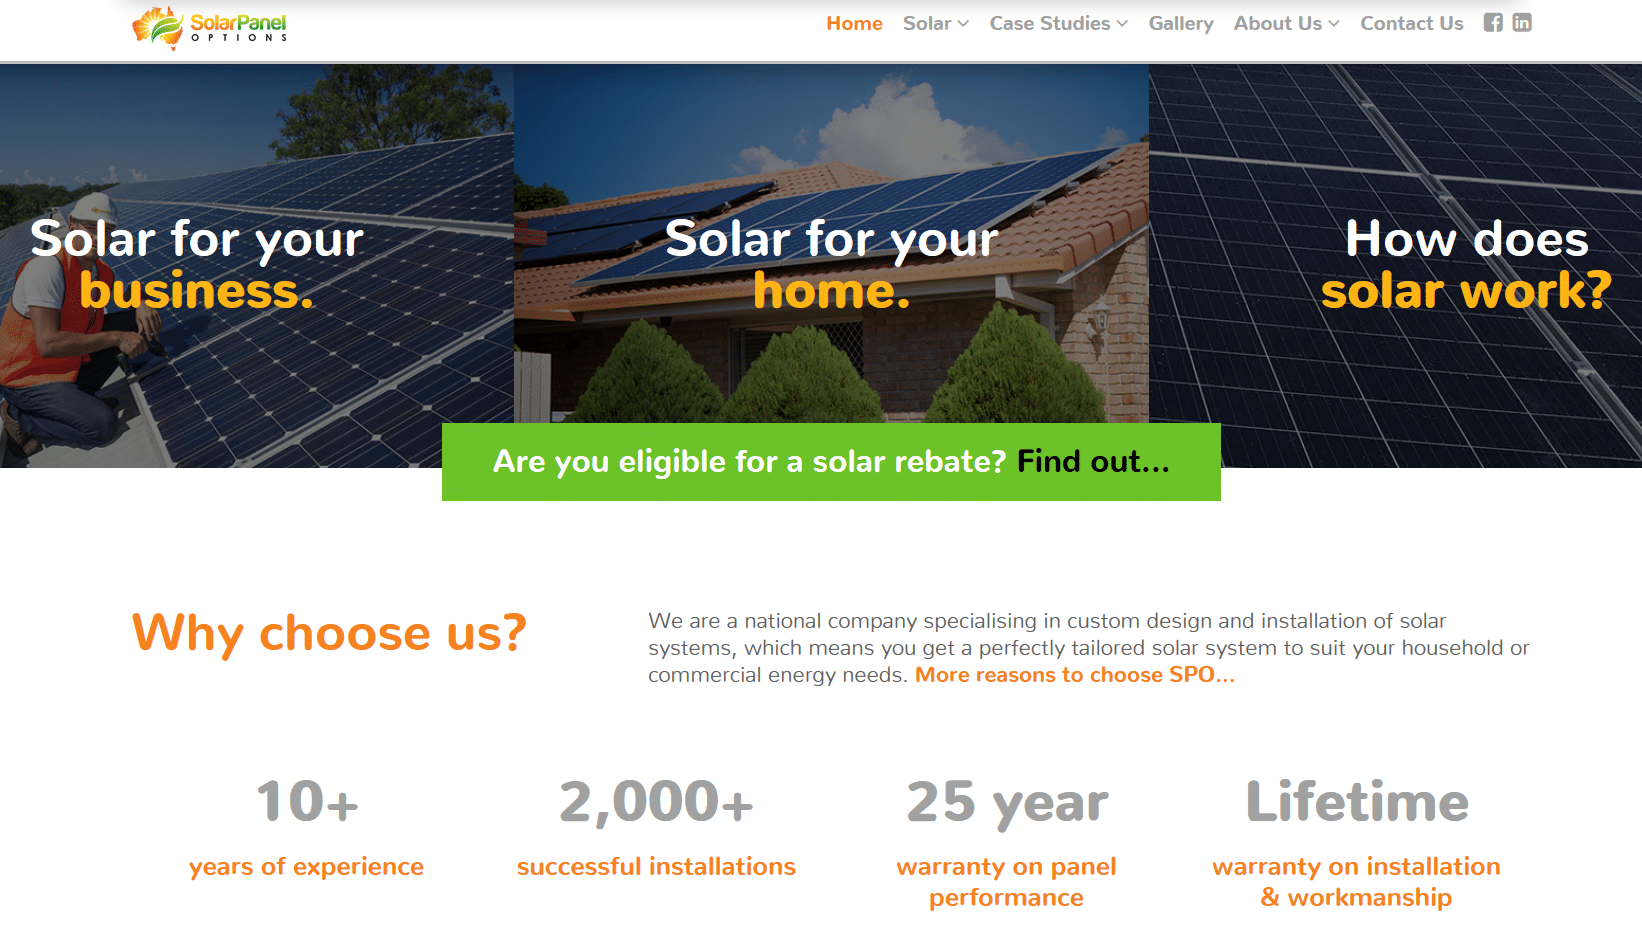 Solar Panel Options website copy for Mity Digital